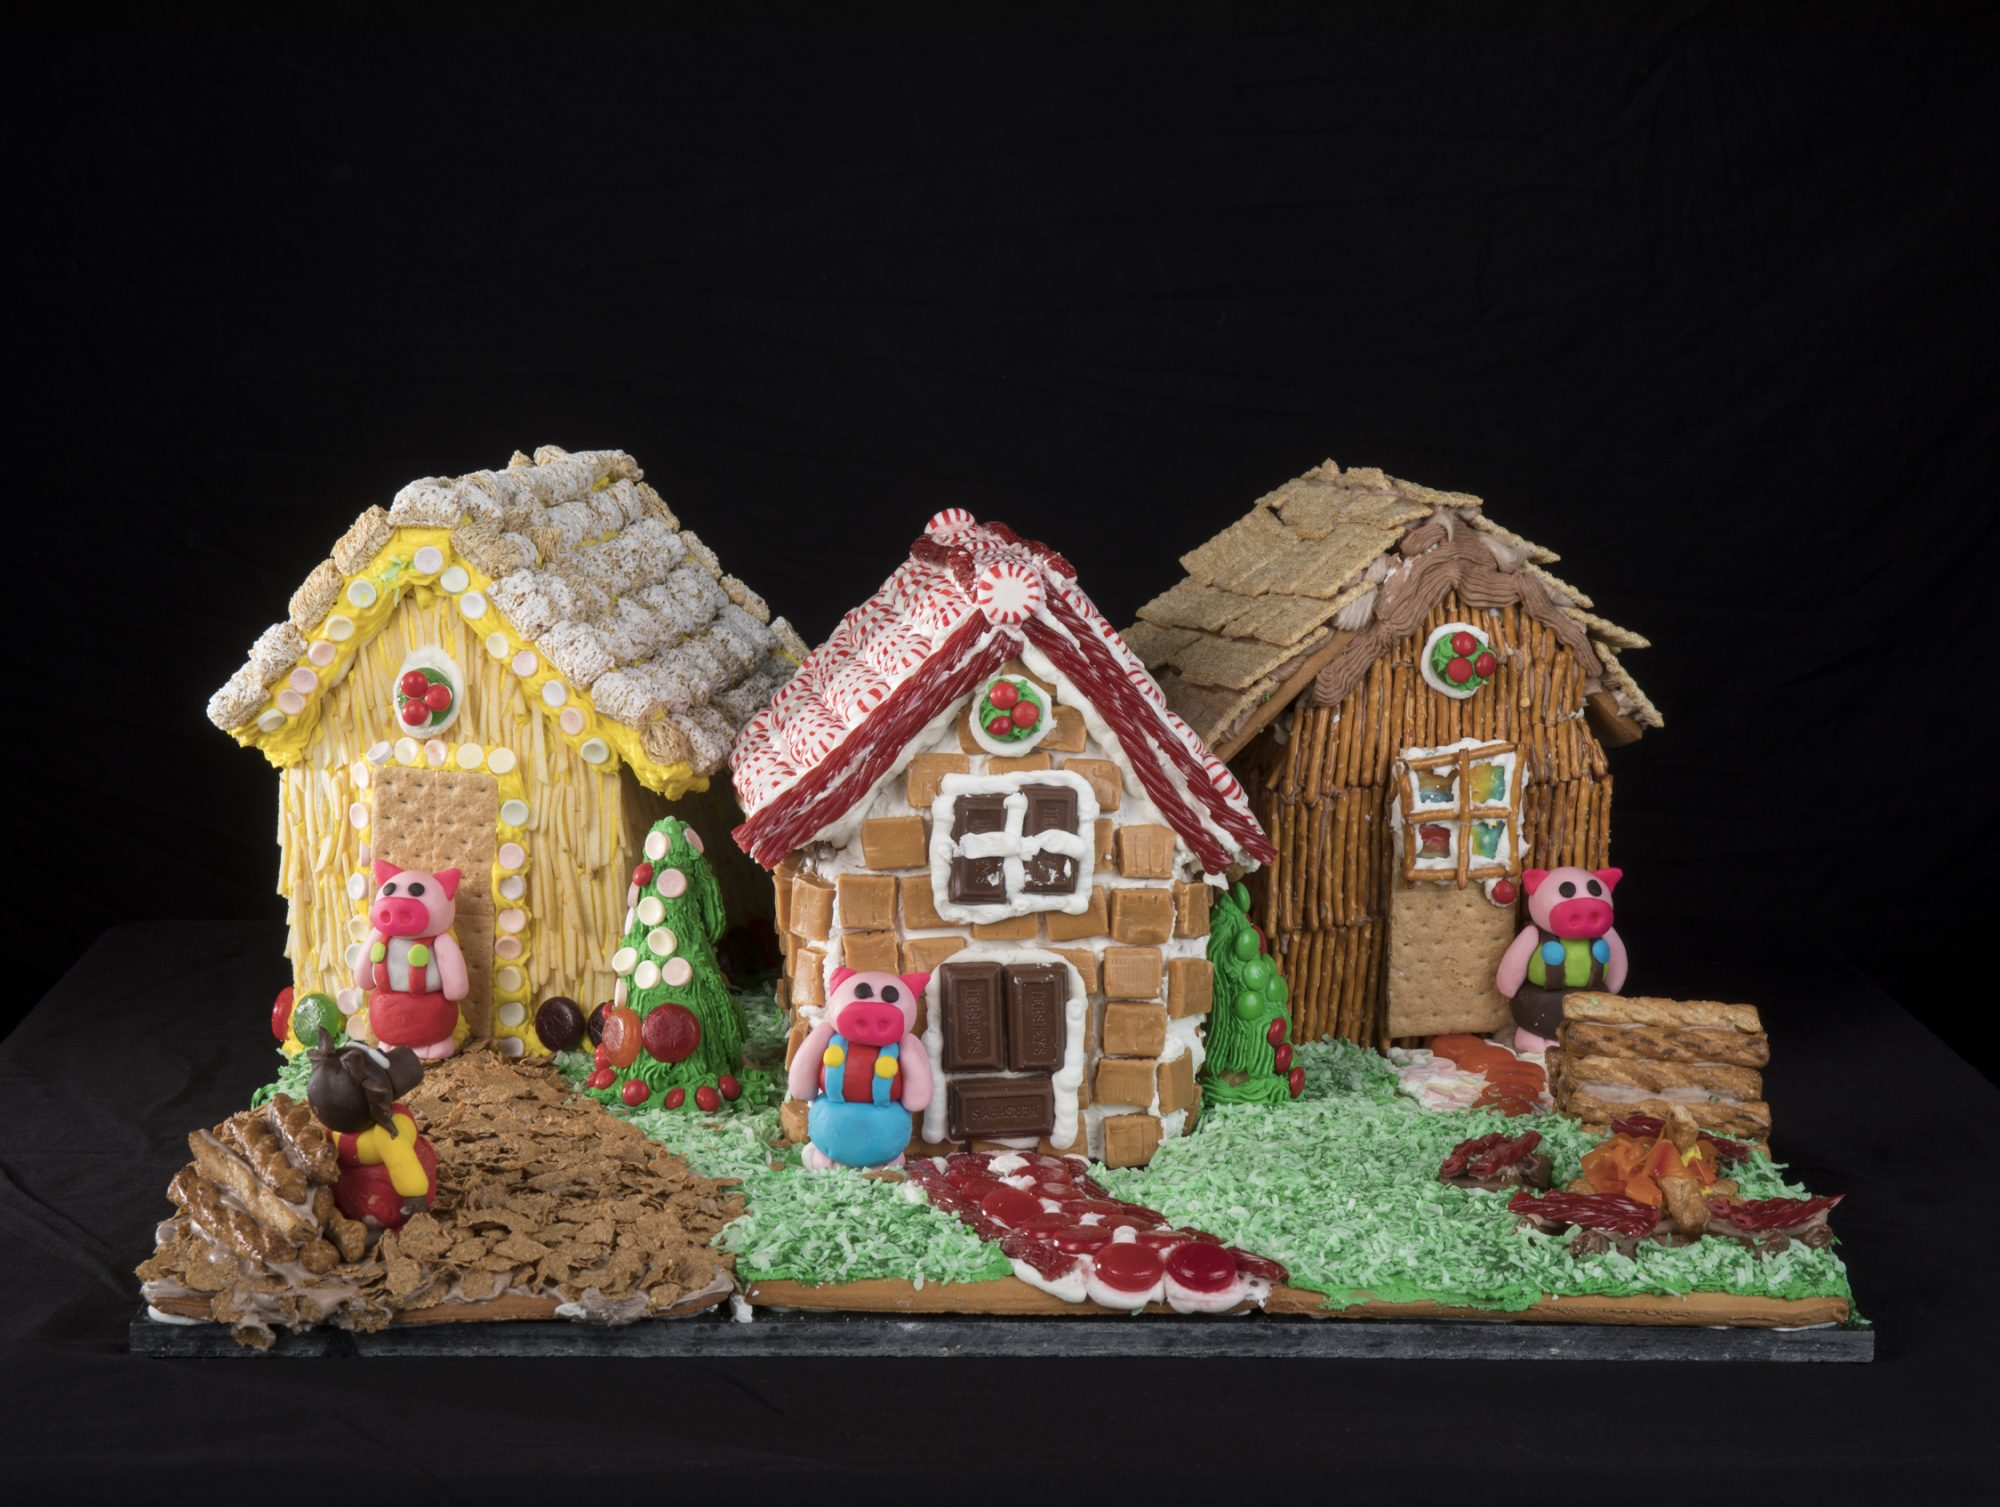 The Three Little Pigs Gingerbread House Competition